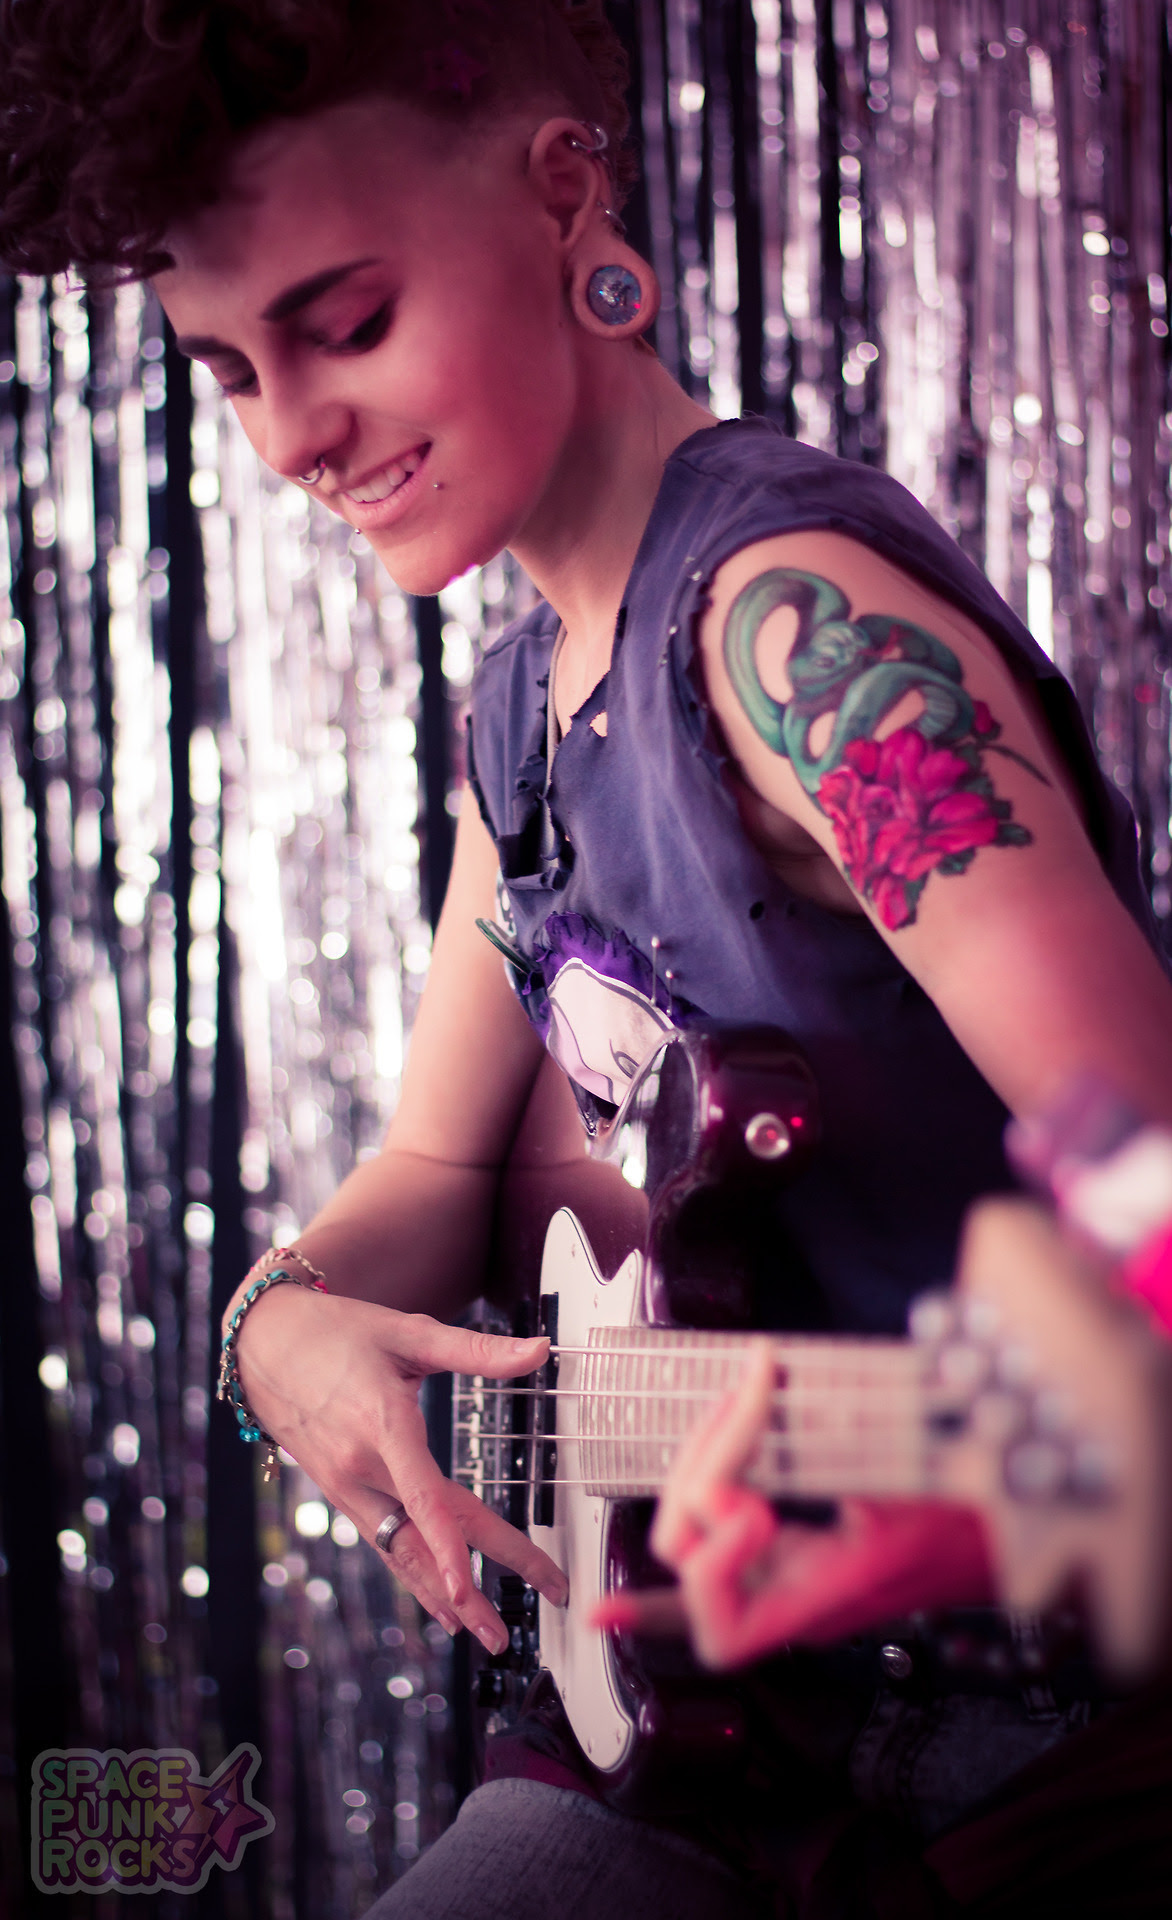 New pics of Lars & Padparadscha online on the Space Punk Rocks Facebook!